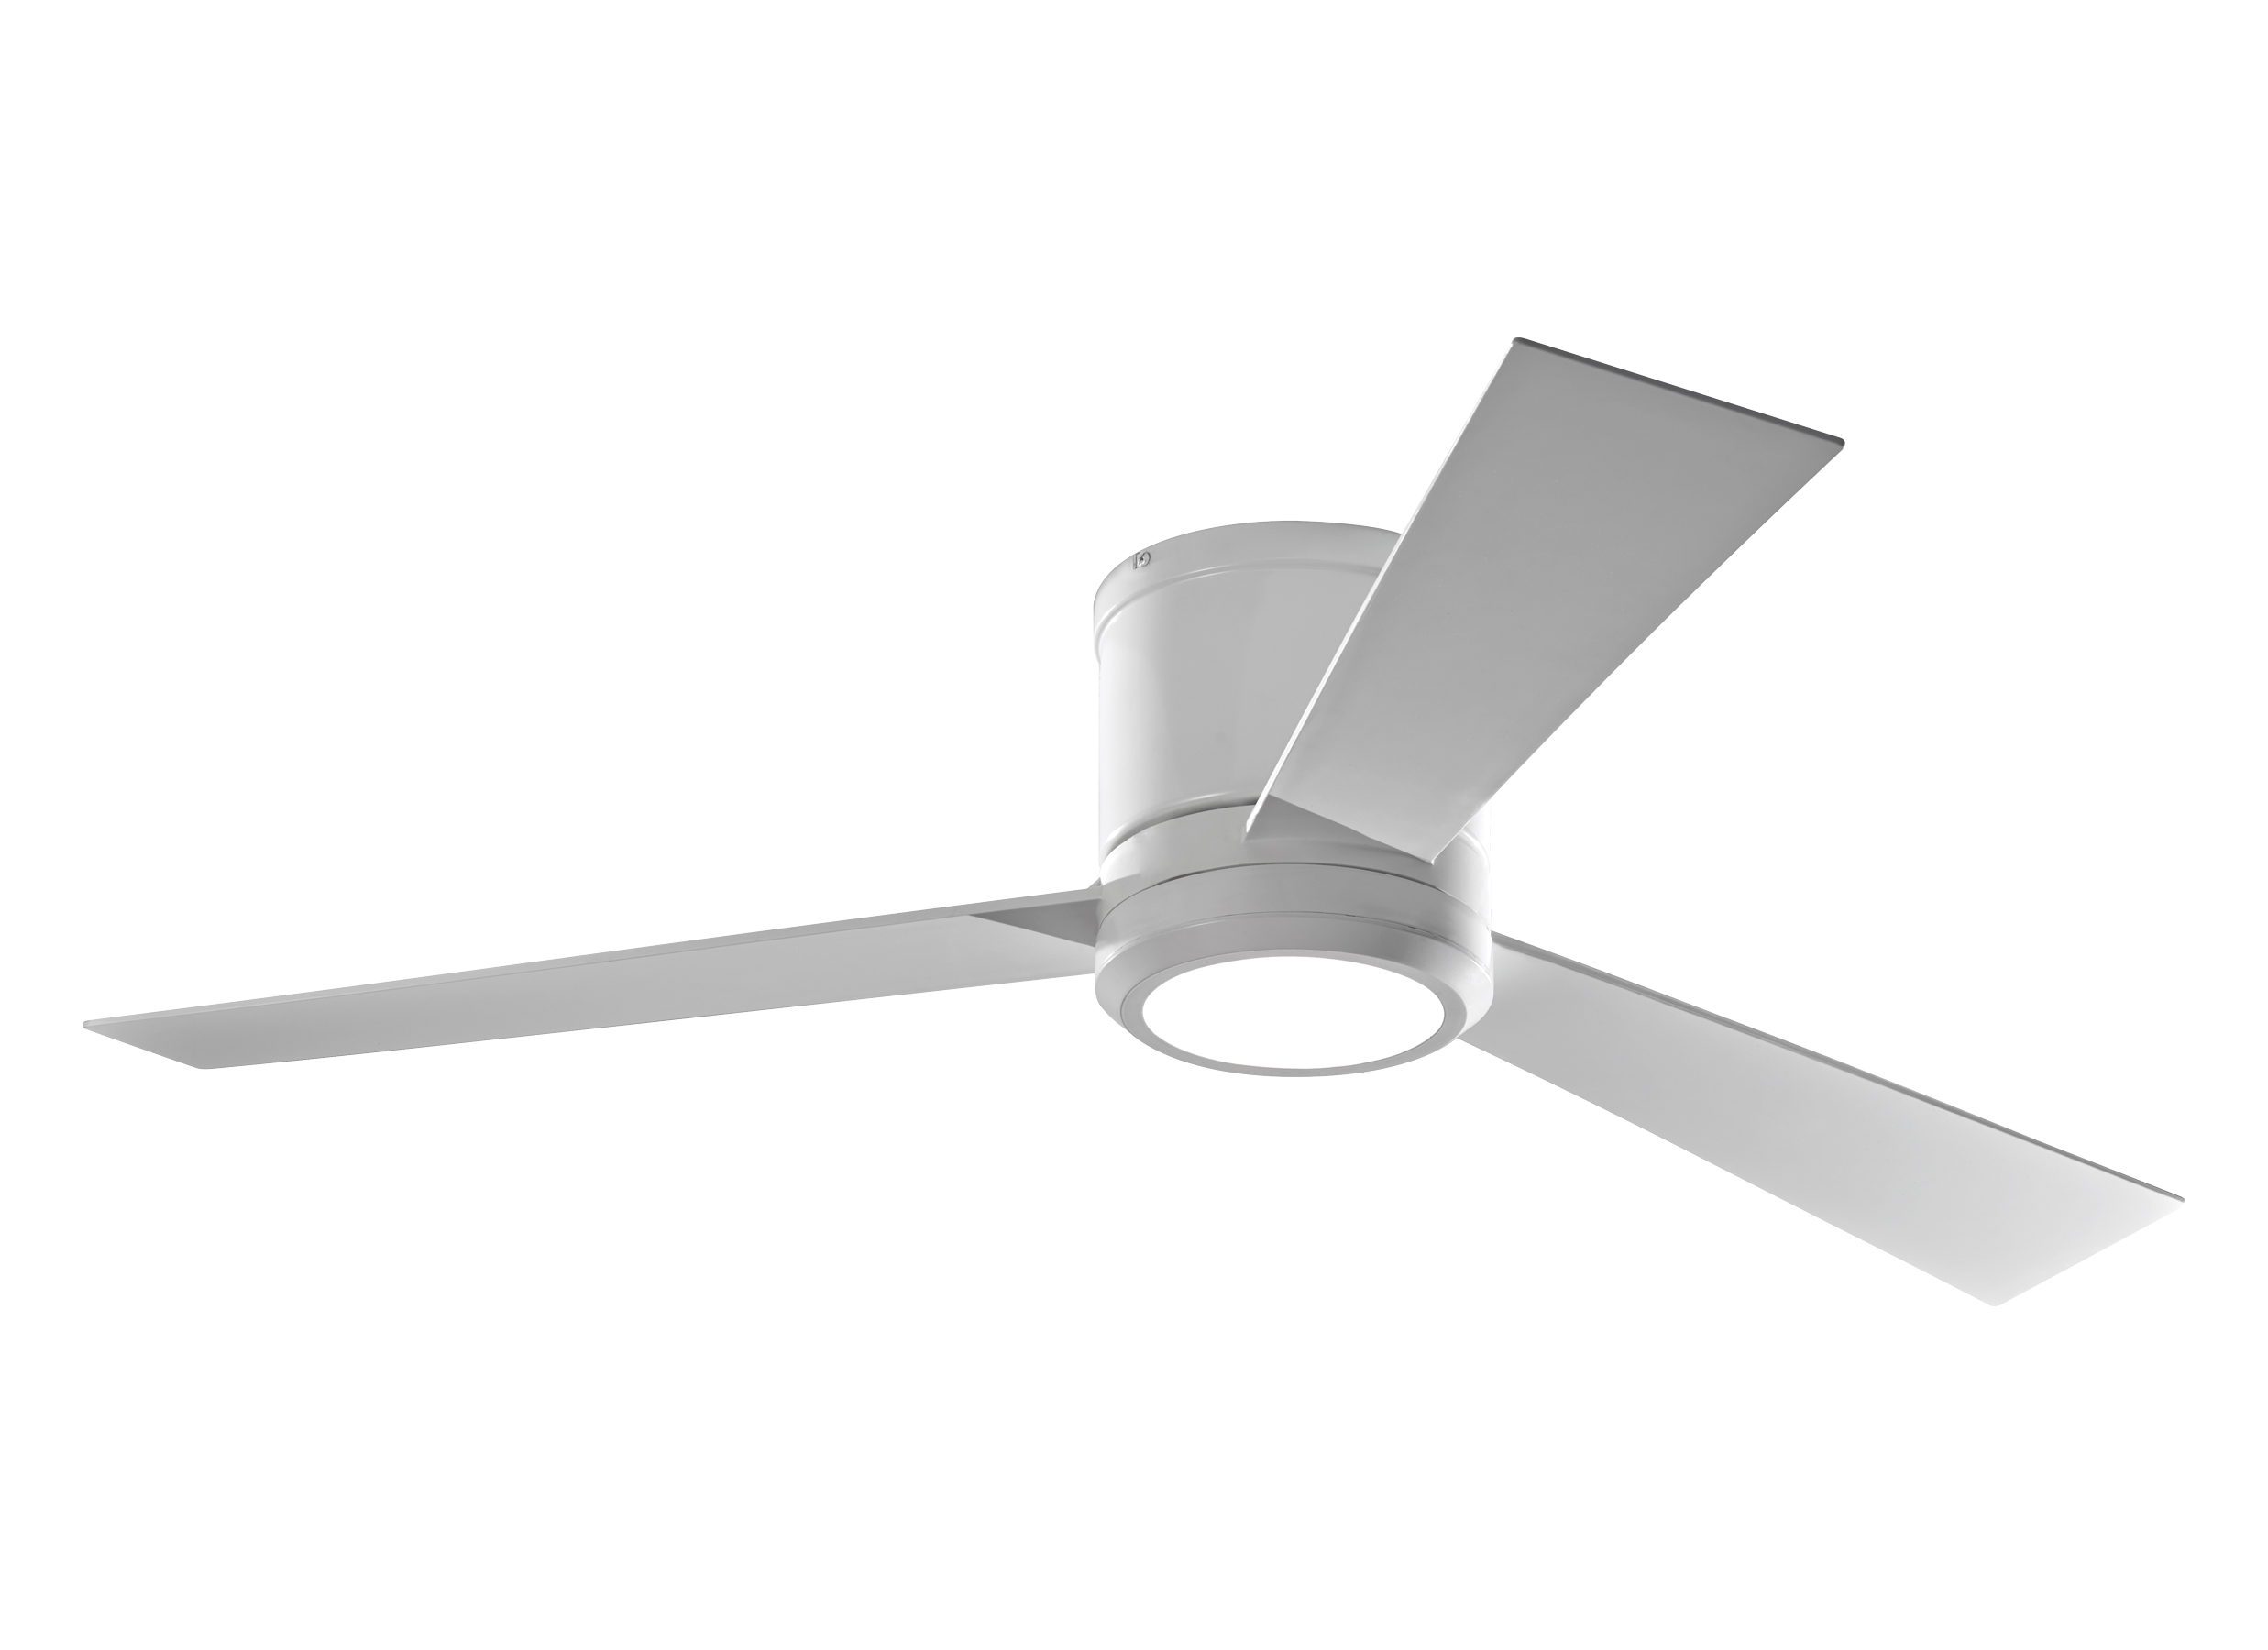 Clarity Max Ceiling Fan With Light By Monte Carlo